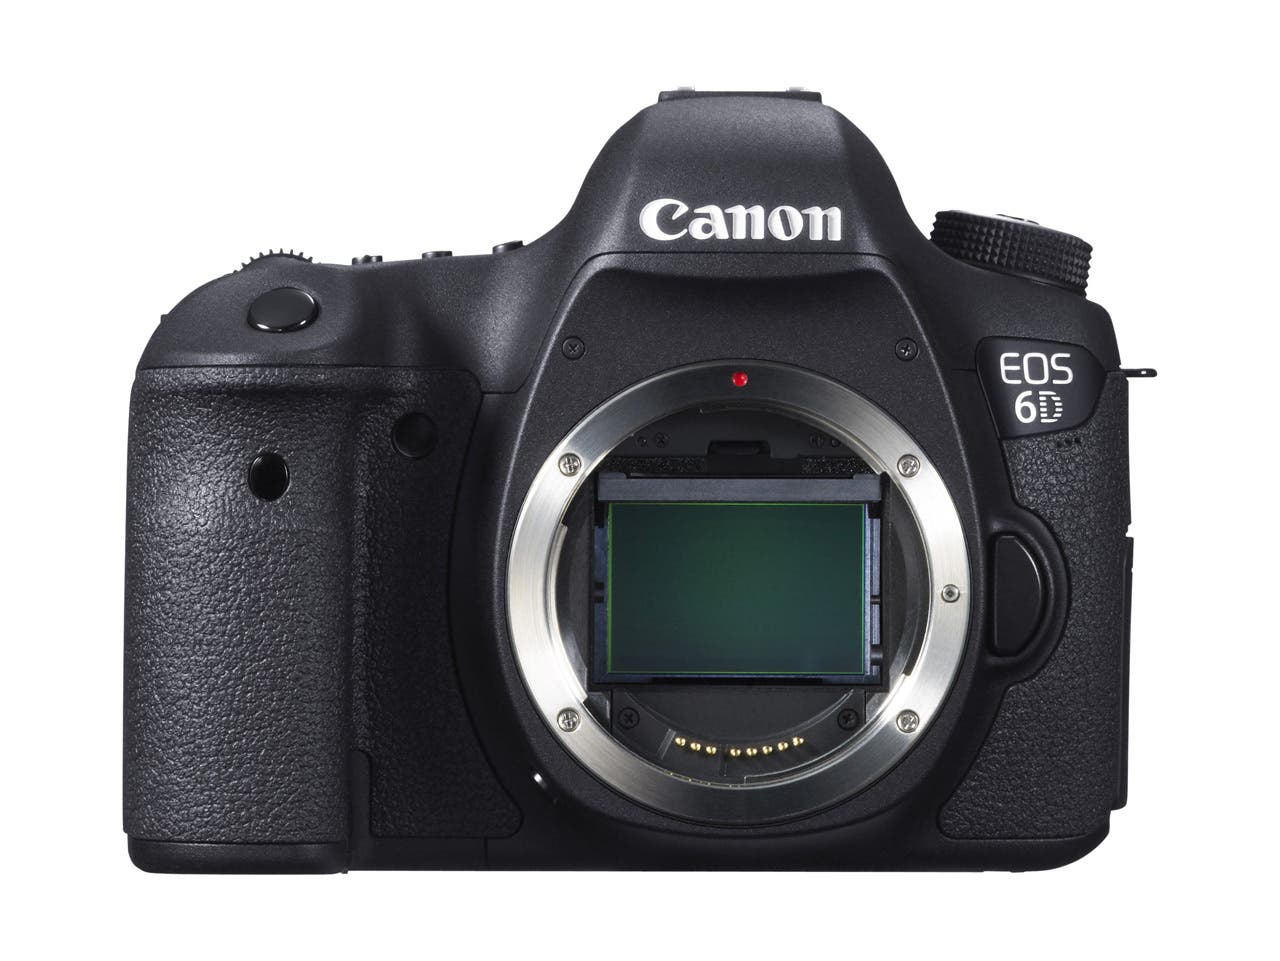 Canon's Highly Rumored 6D Surfaces to Challenge Nikon's D600